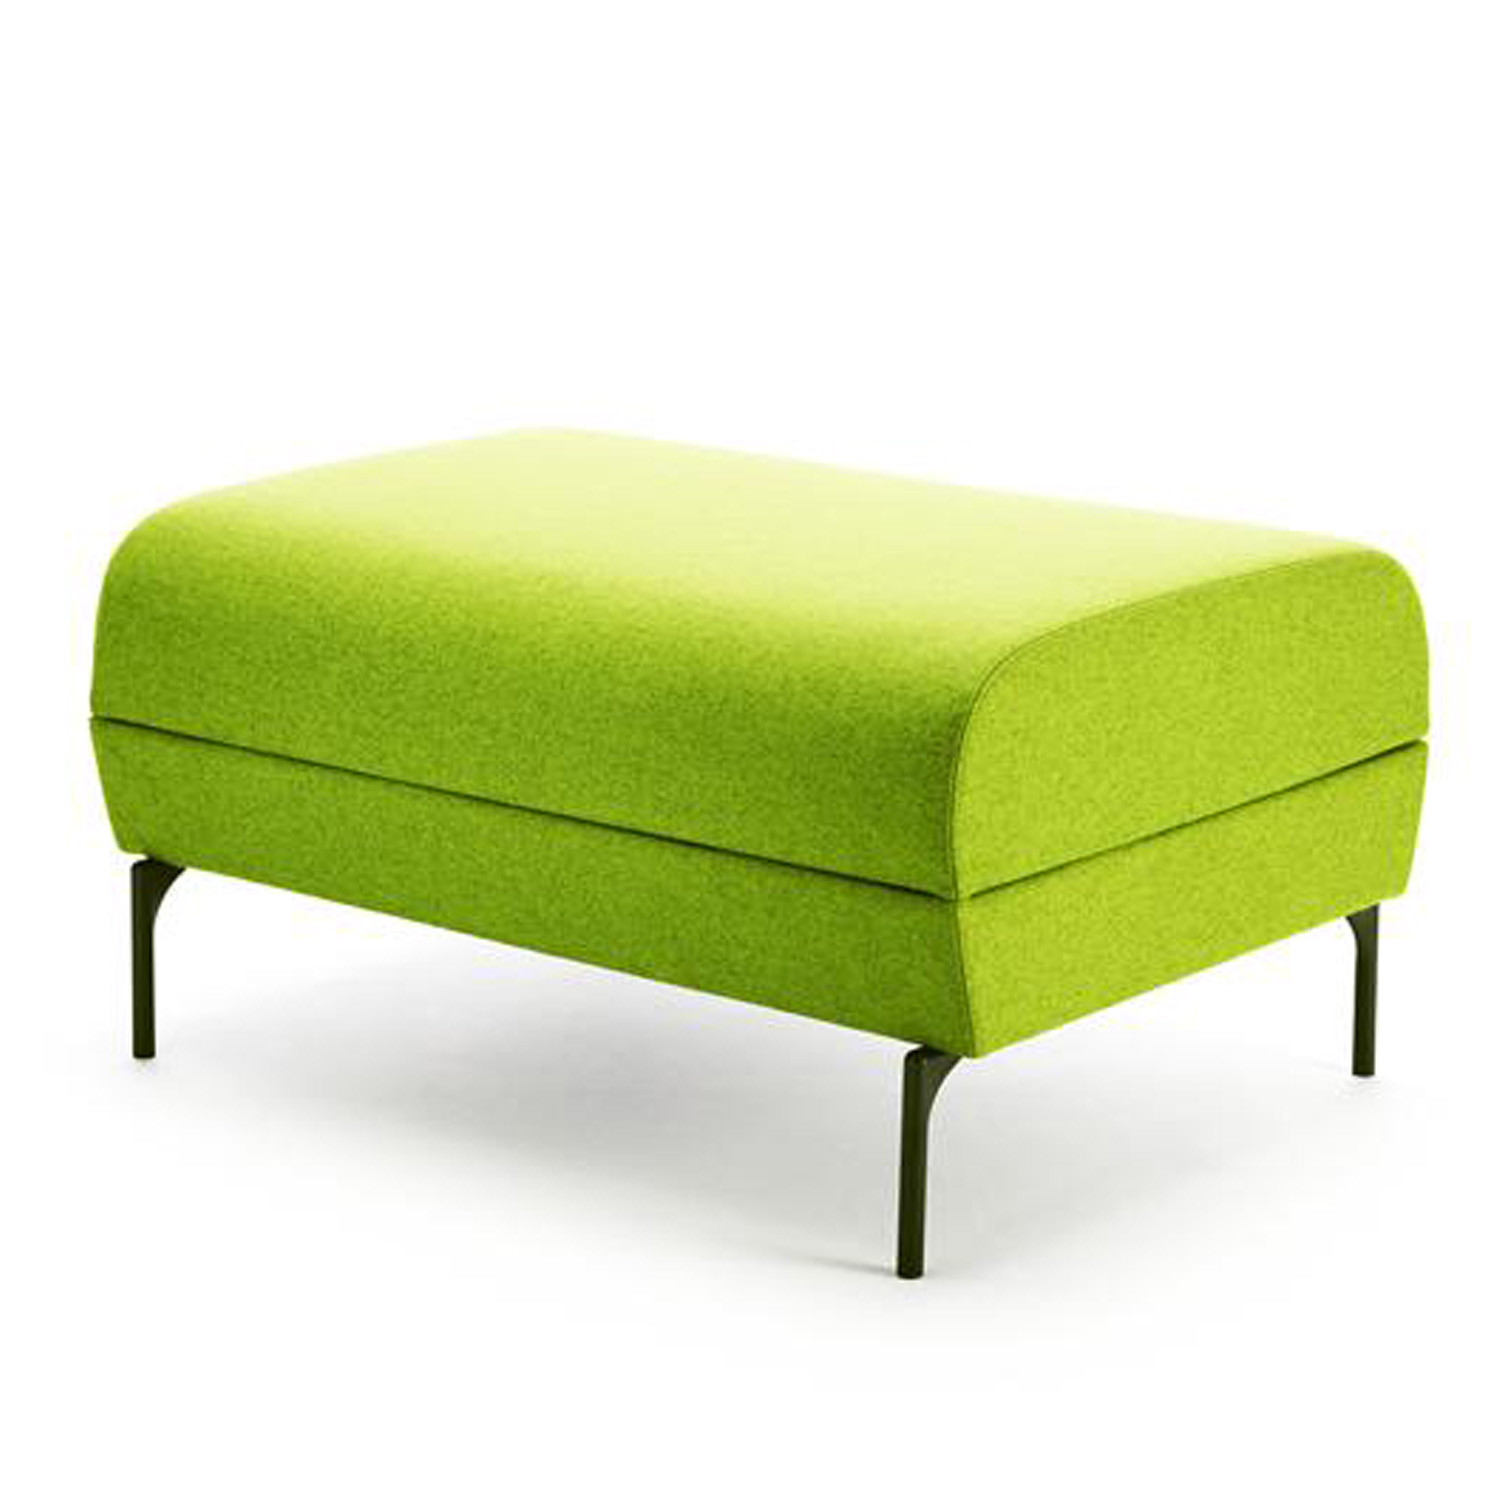 Addit Sofa Bench